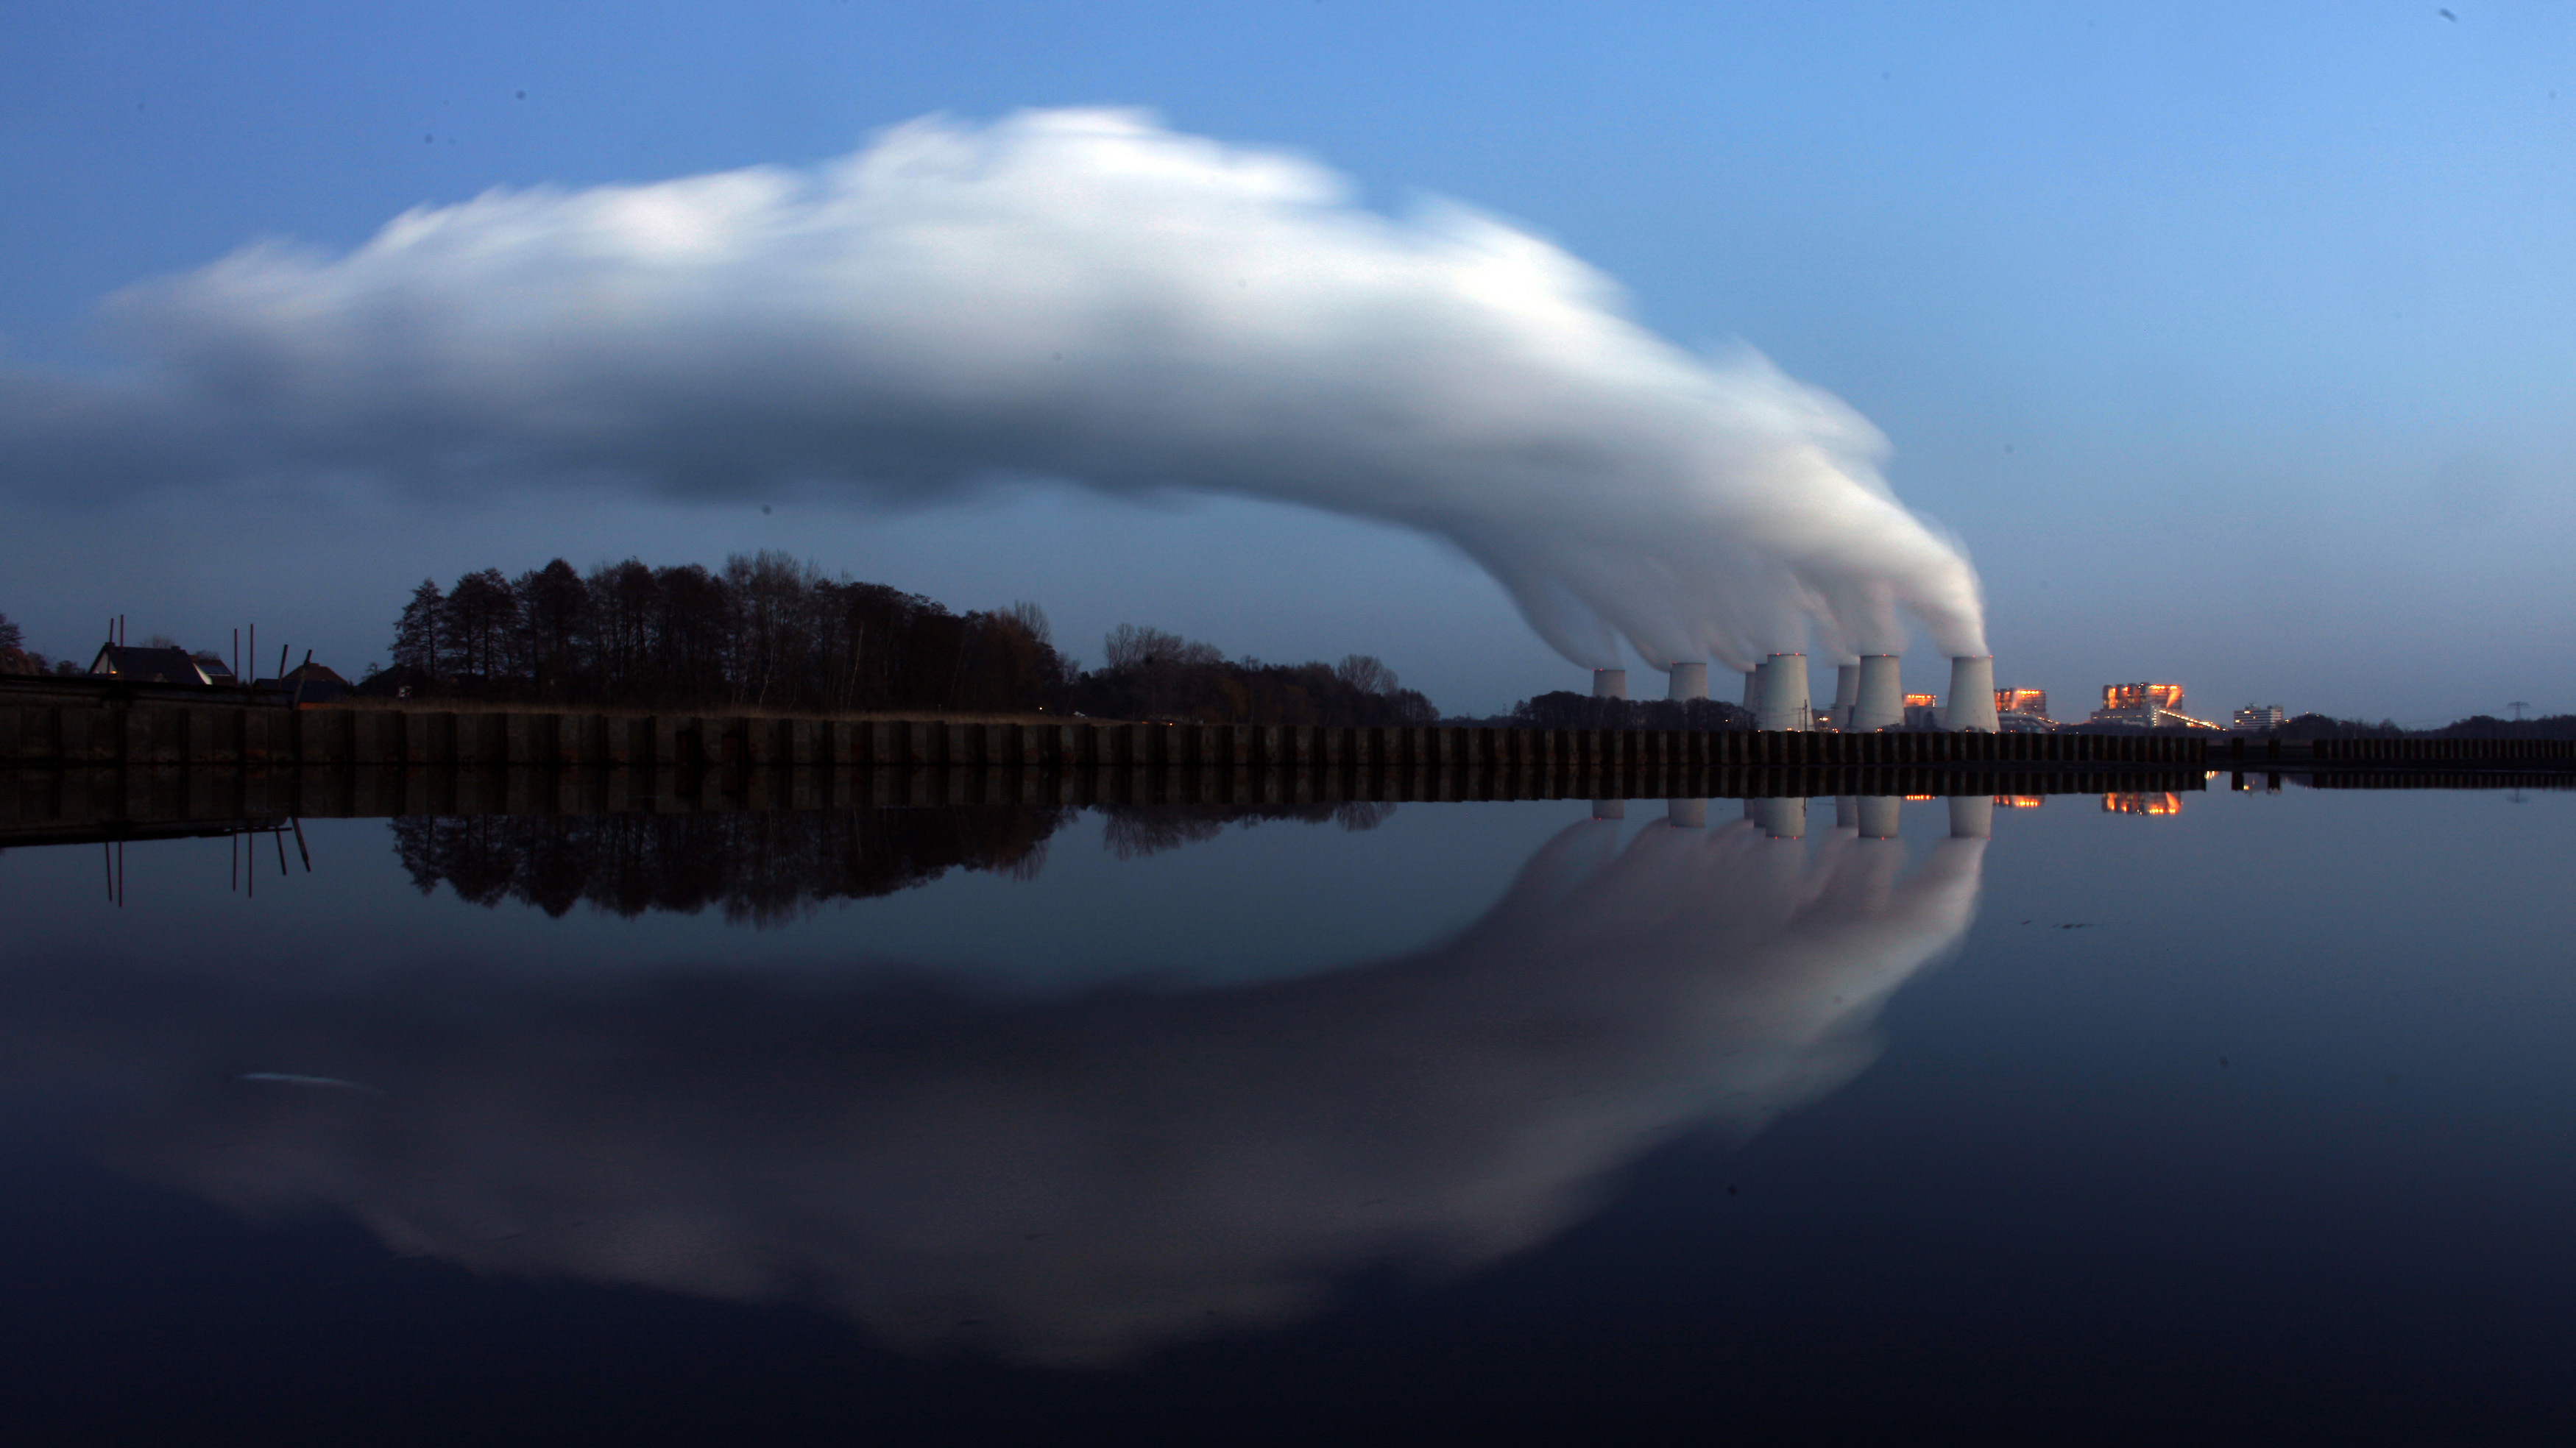 Steam billowing from the cooling towers of Vattenfall's Jaenschwalde brown coal power station is reflected in the water of a lake near Cottbus, eastern Germany December 2, 2009. Most world leaders plan to attend a climate summit in Copenhagen December 7-18, boosting chances that a new U.N. deal to fight climate change will be reached, host Denmark said on Tuesday. REUTERS/Pawel Kopczynski (GERMANY - Tags: ENVIRONMENT ENERGY) - RTXRDCW